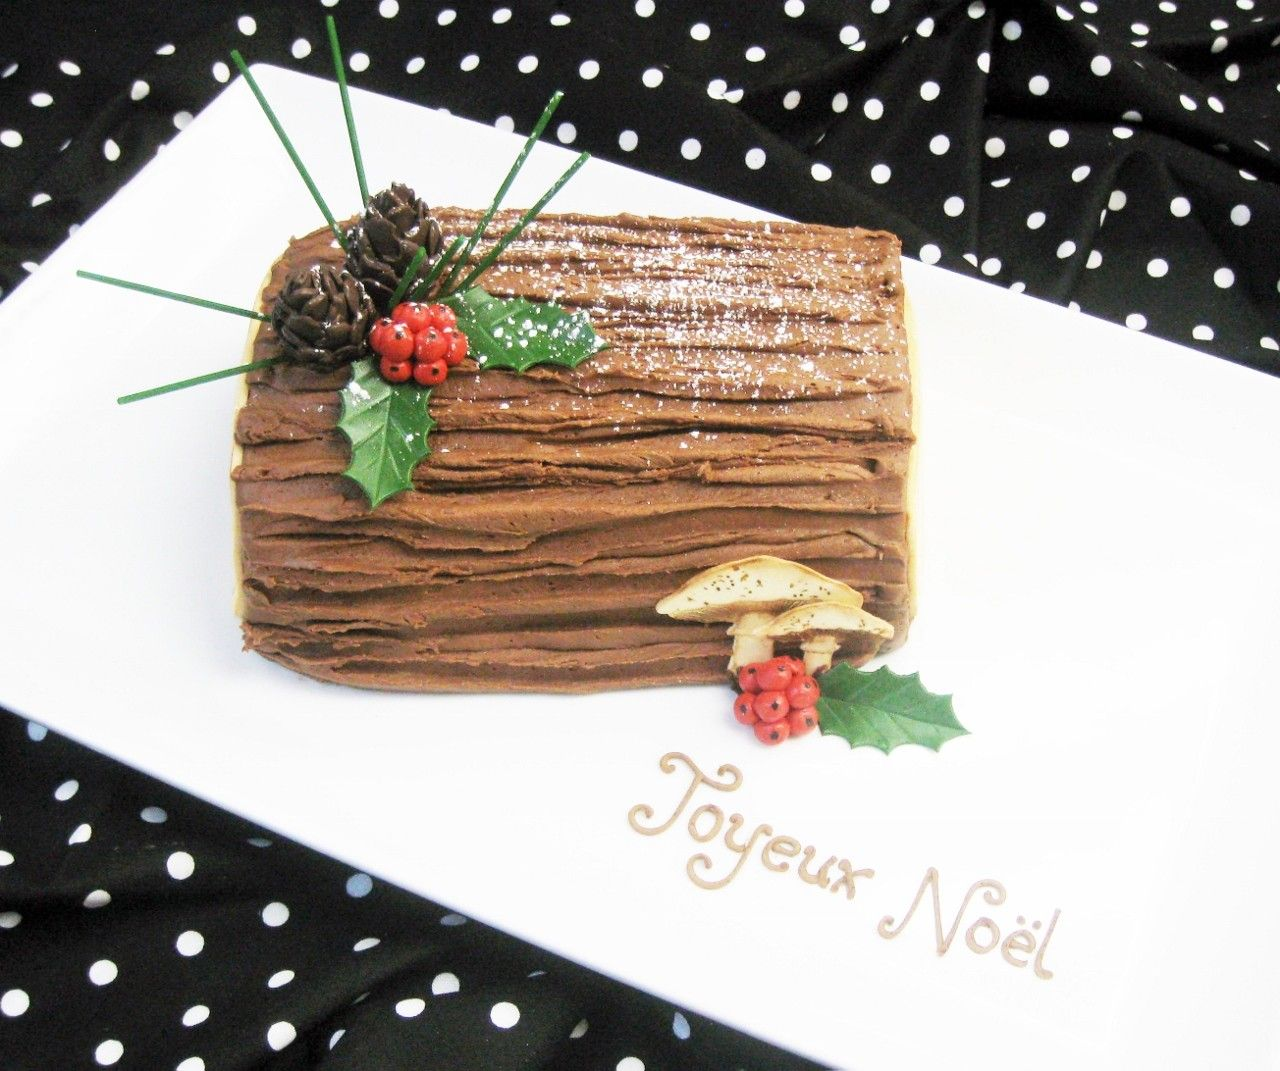 Bûche de Noël: A Most Delicious Tree